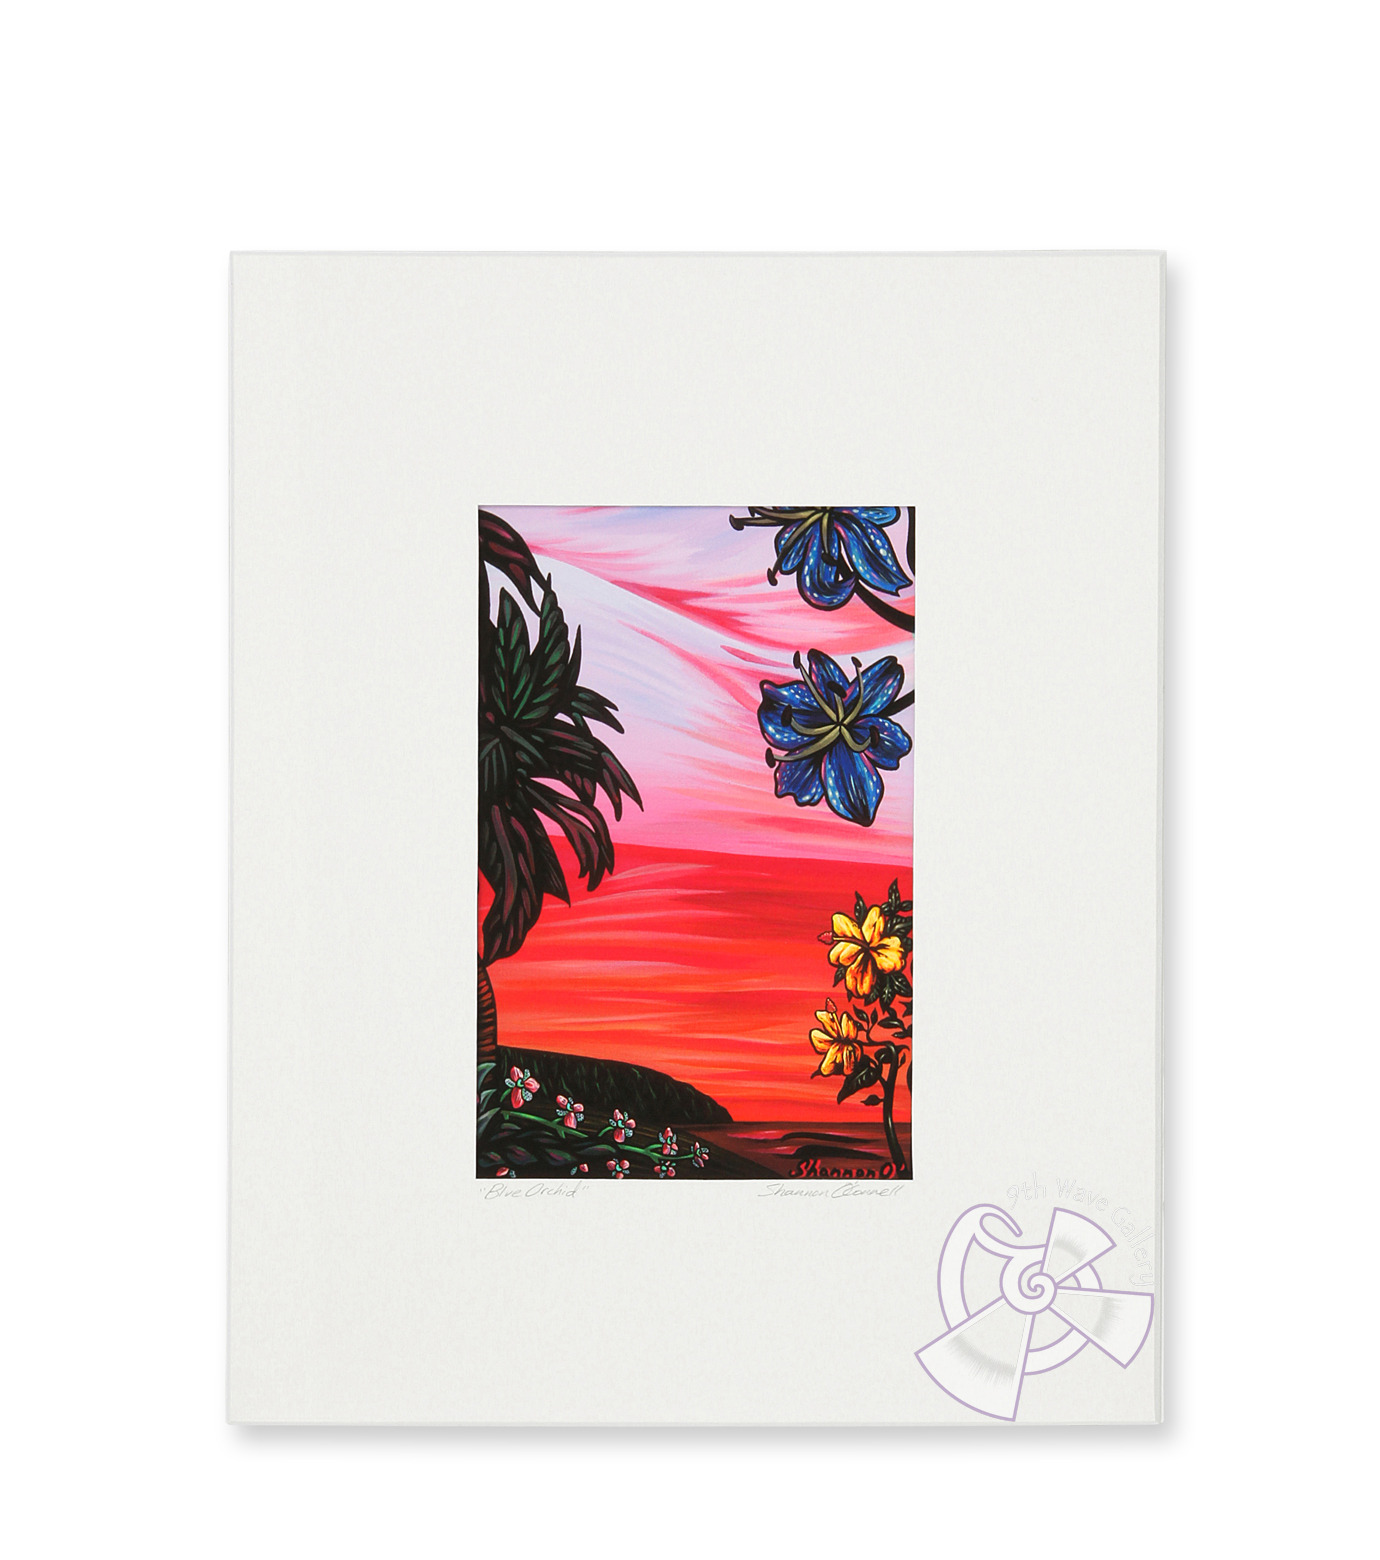 9th Wave Gallery(9th ウェイブ ギャラリー)のBlue orchid (mini giclee)-NONE-S-PrM-Blue-0 拡大詳細画像1